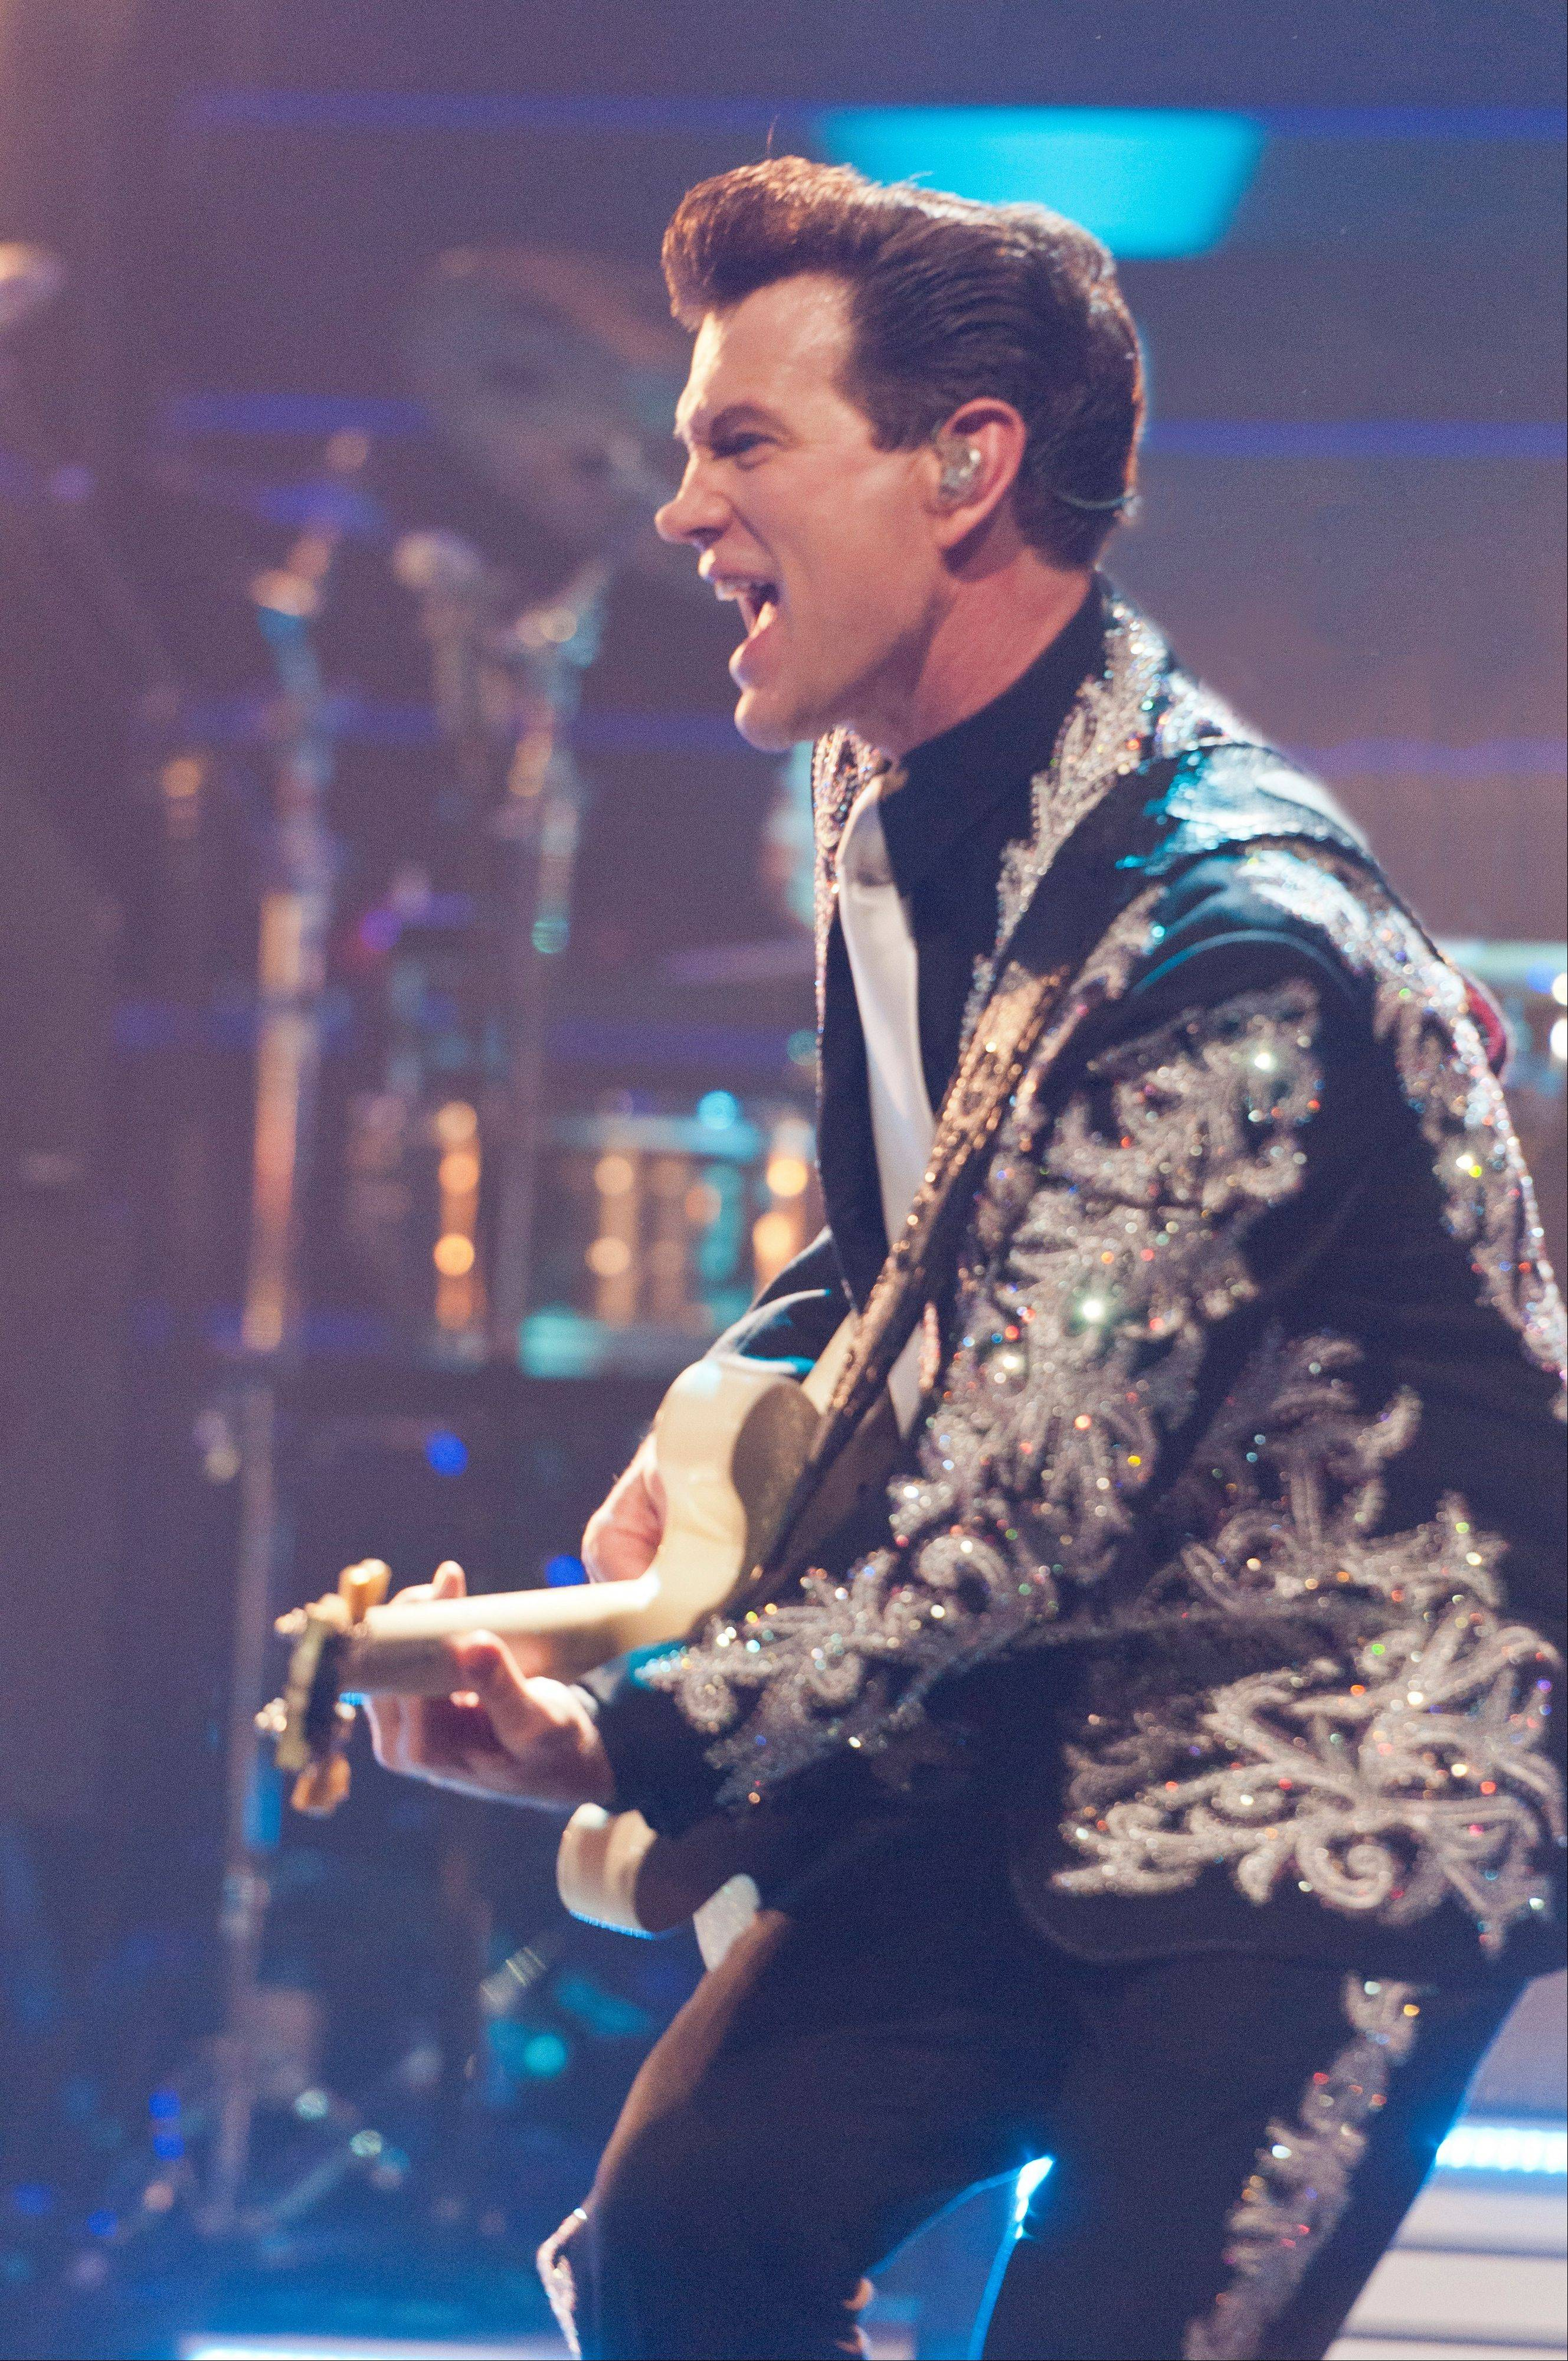 Head to Waukegan's Genesee Theatre to see Chris Isaak's holiday show.